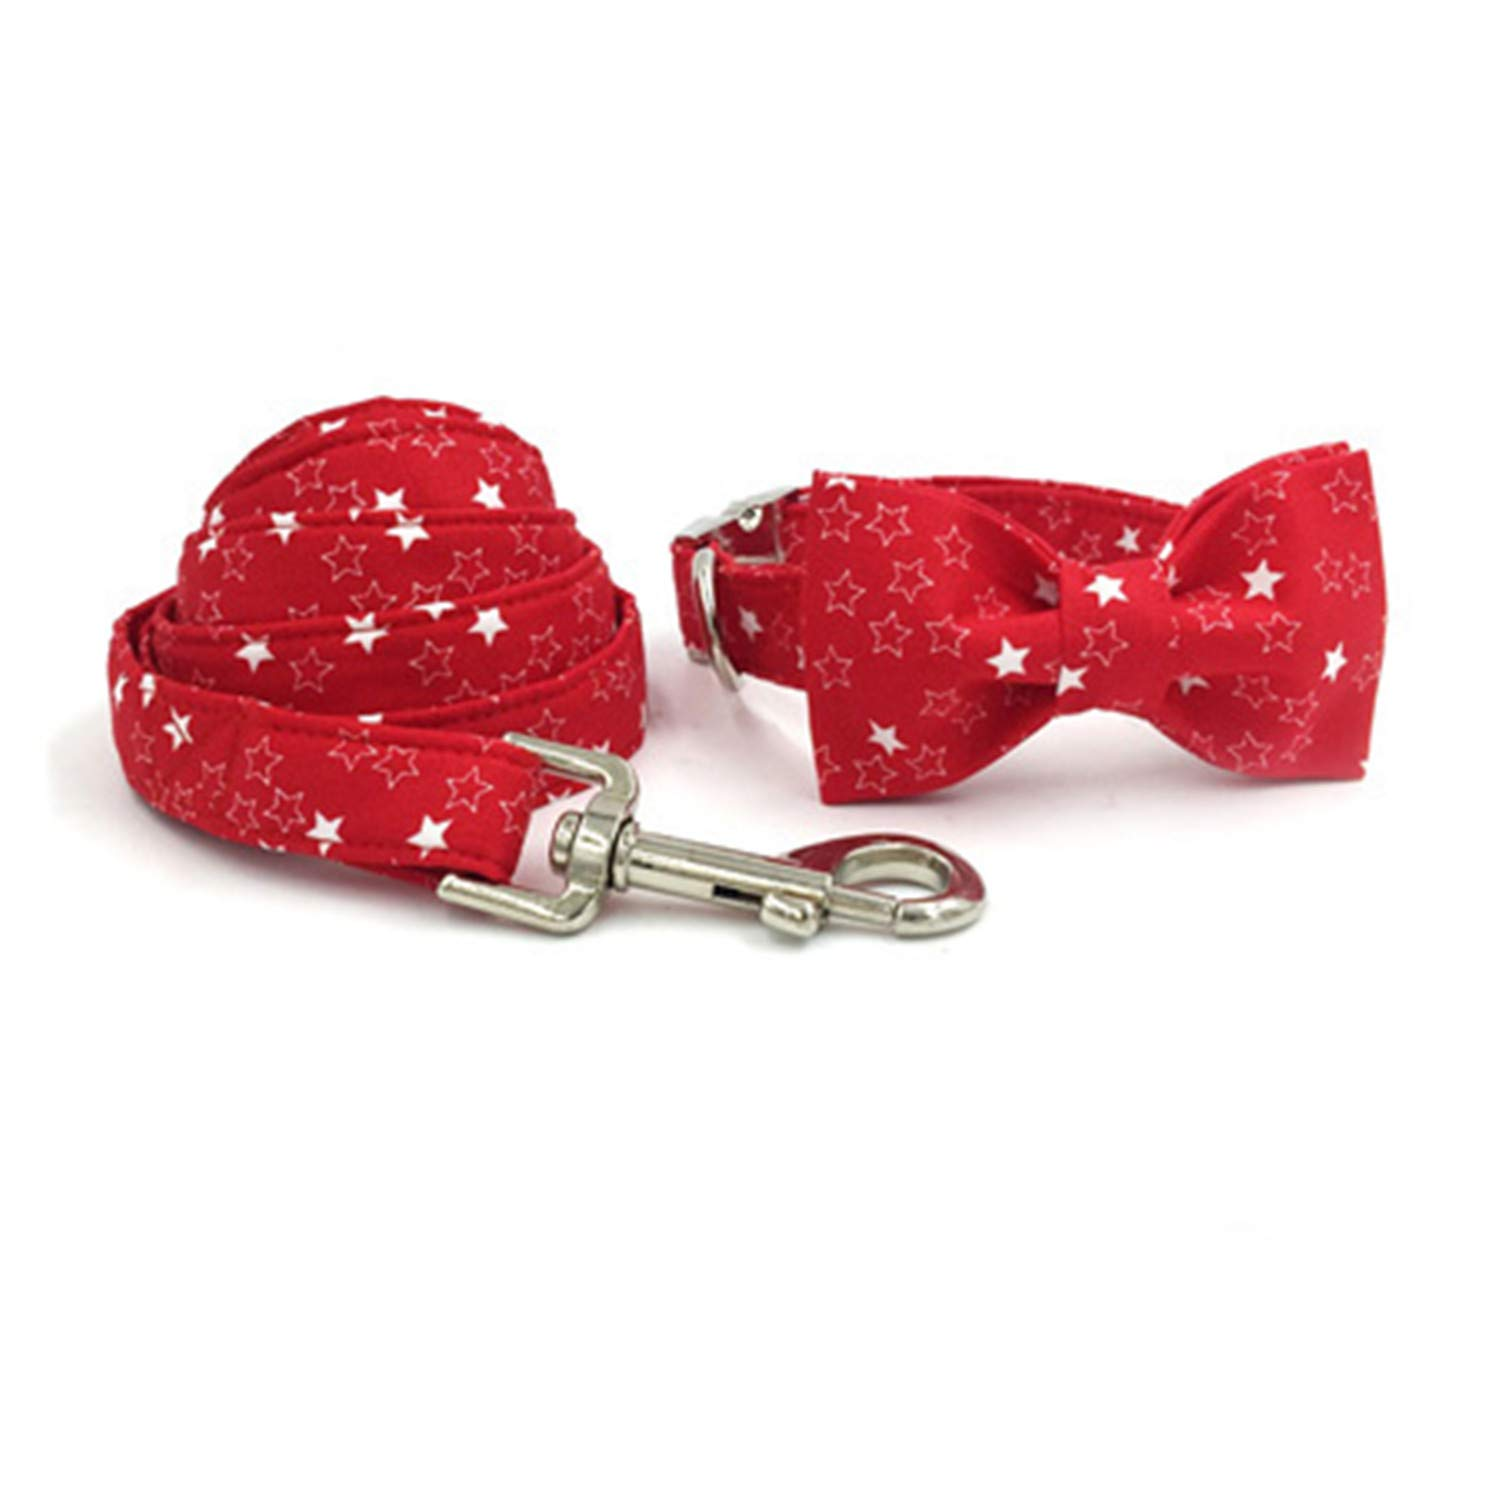 Collar bow and leash L collar bow and leash L Dog Collar and Leash Set with Bow Tie Red Star Cotton Dog&Cat Necklace and Dog Leash for Pet Accessories Gift Collar Bow and Leash L